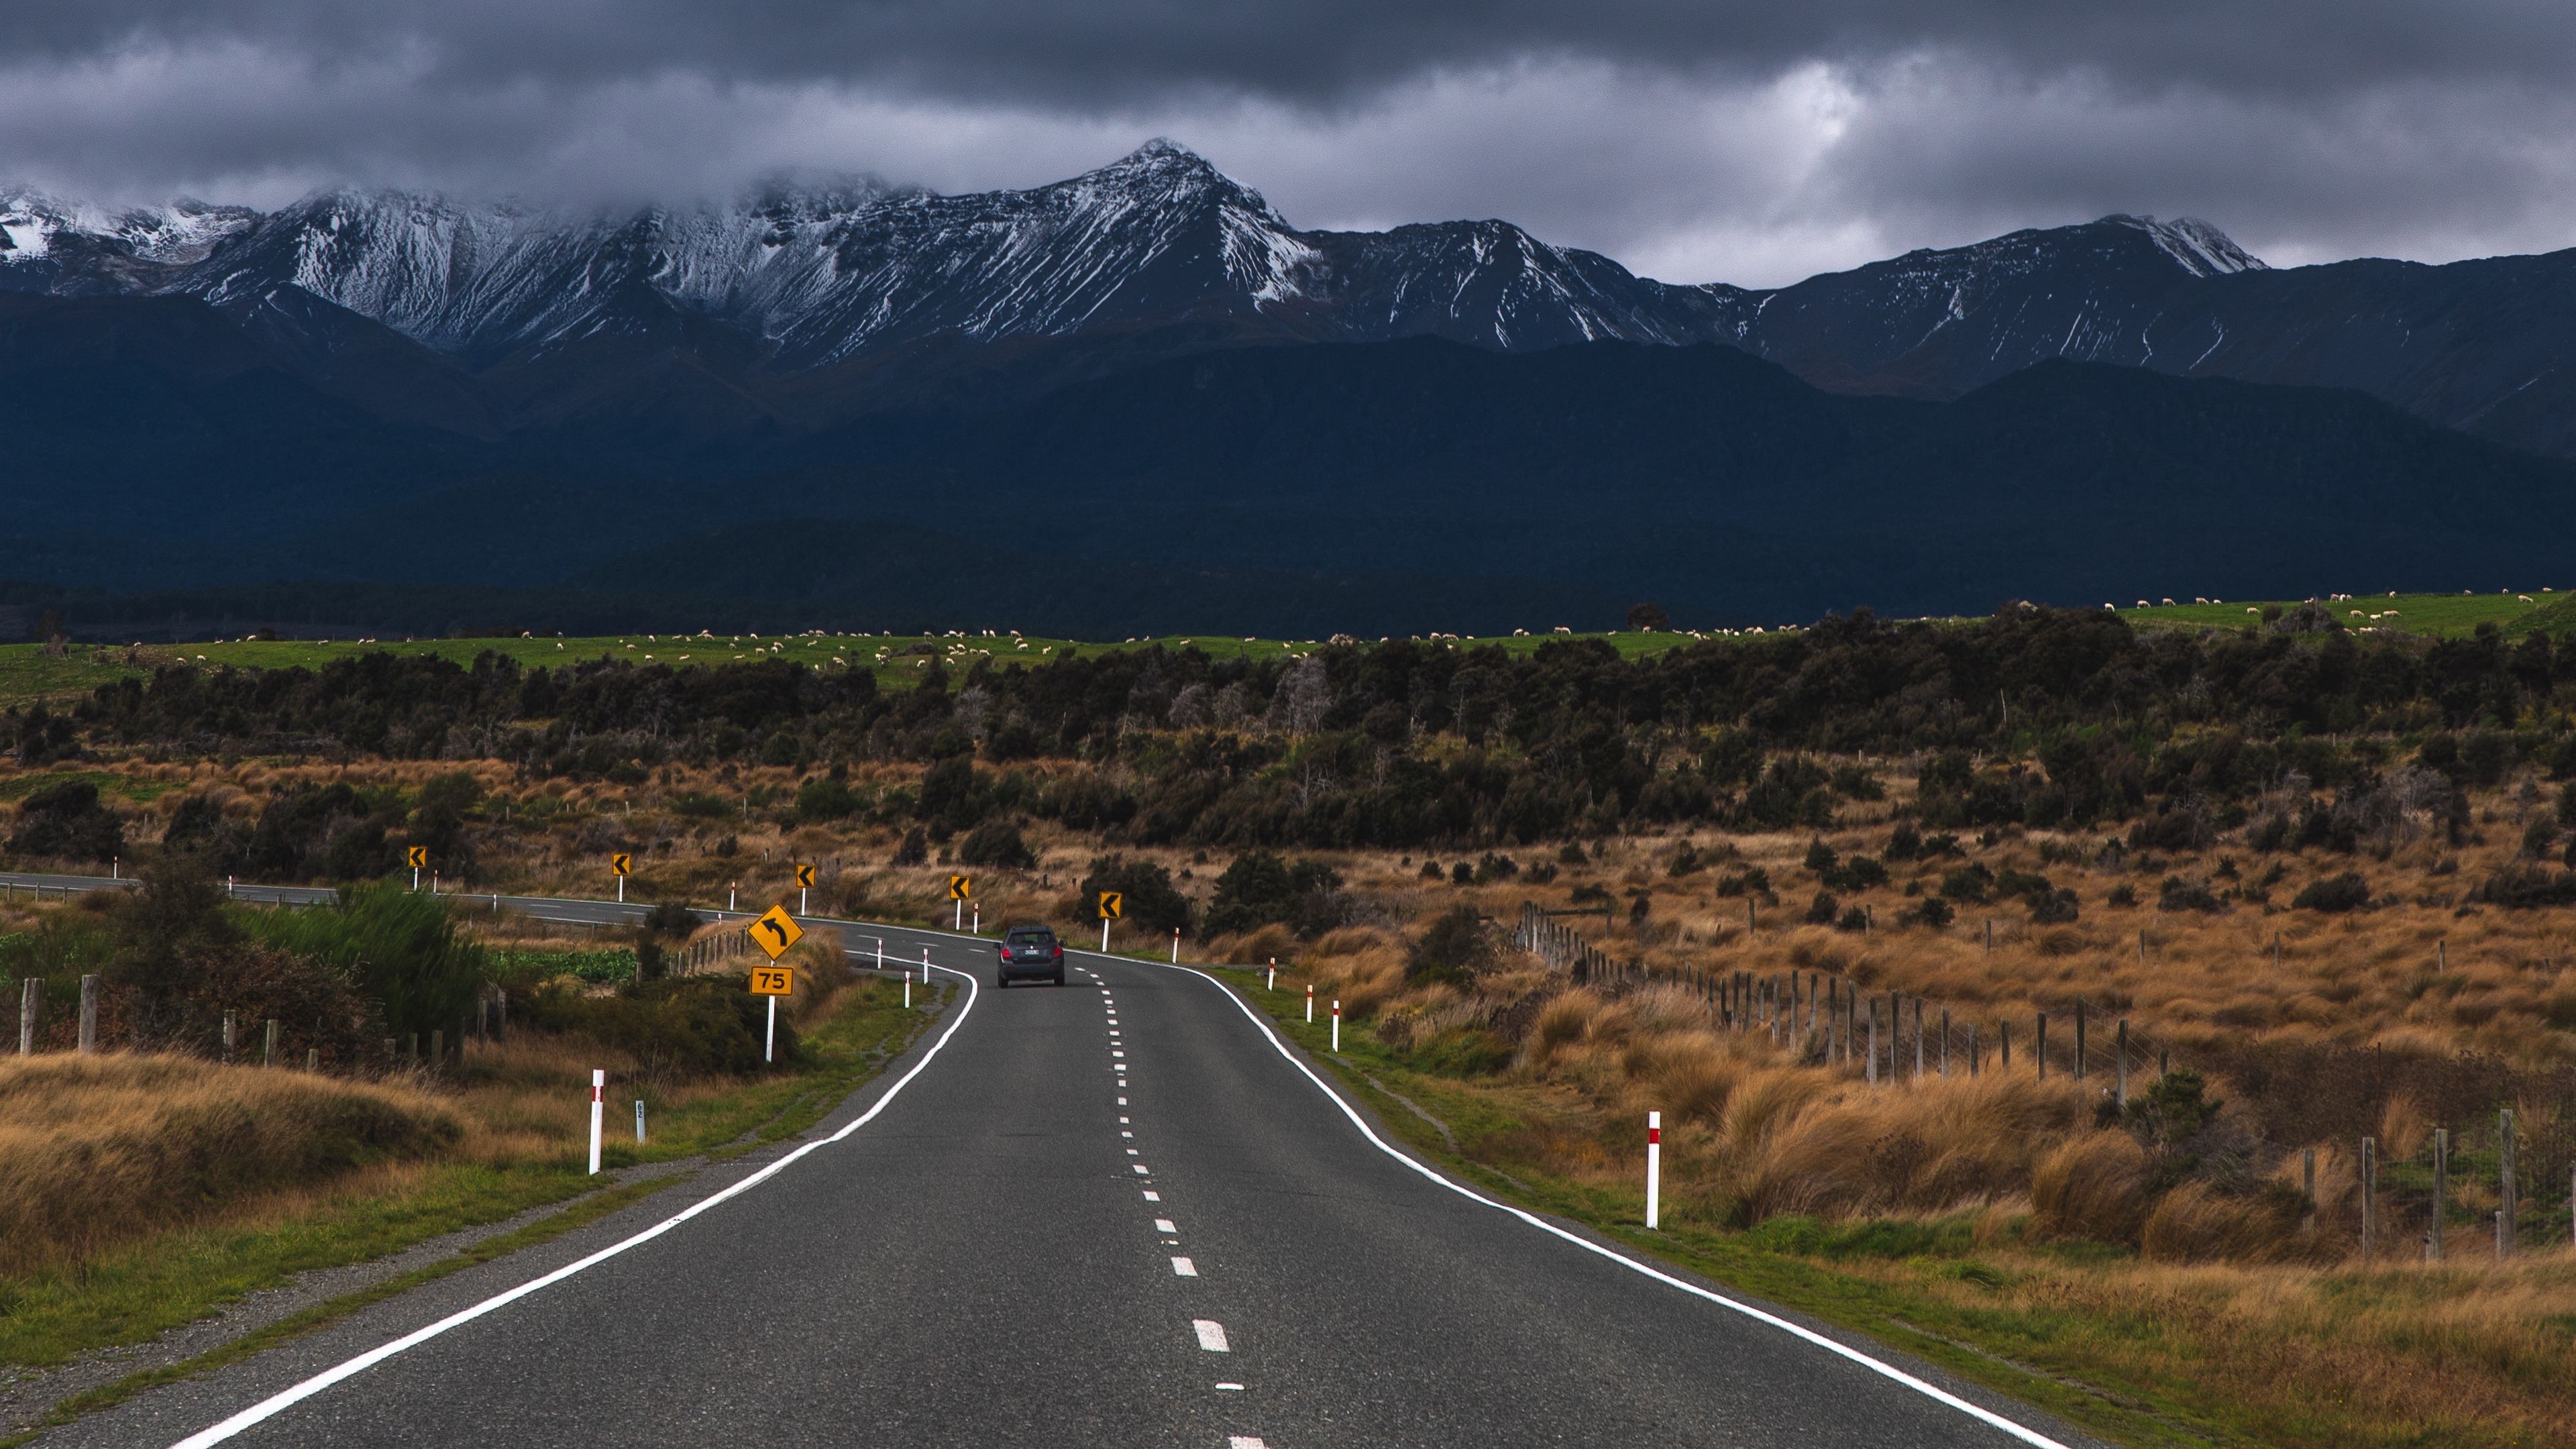 road counting mountain te anau new zealand 4k 1541115429 - road, counting, mountain, te anau, new zealand 4k - Road, Mountain, counting